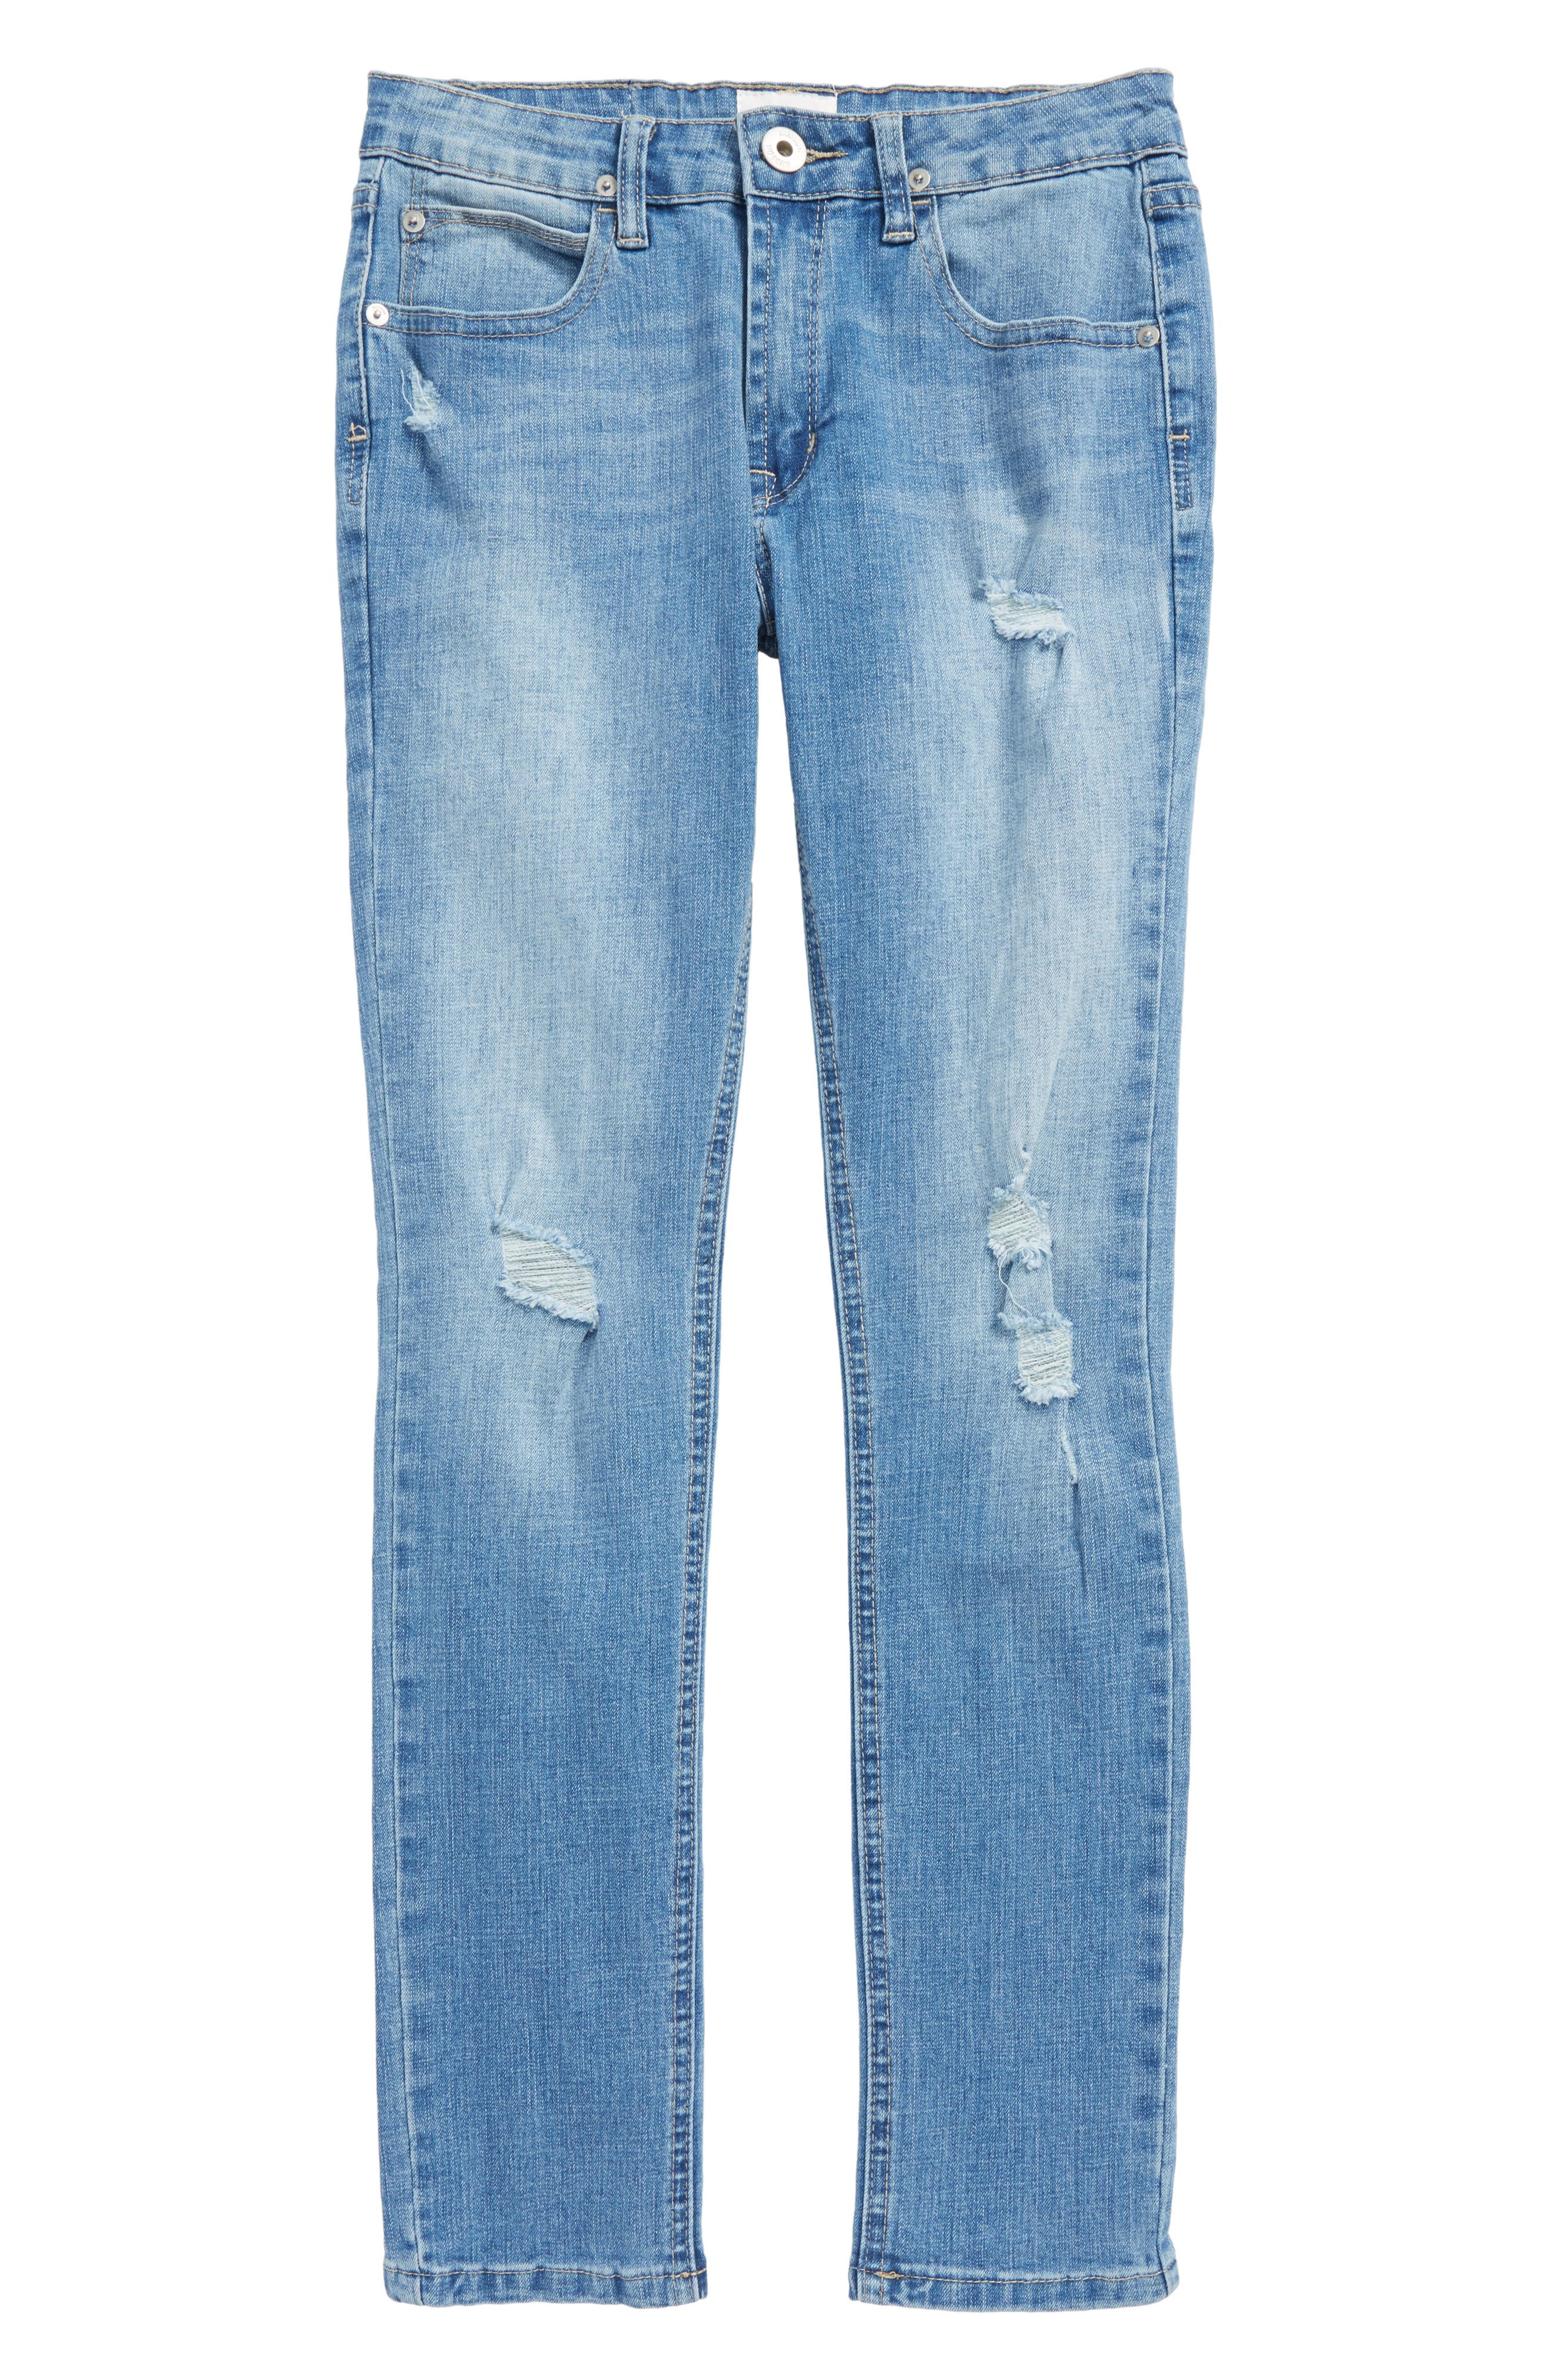 Jude Skinny Jeans,                         Main,                         color, Stone Wash